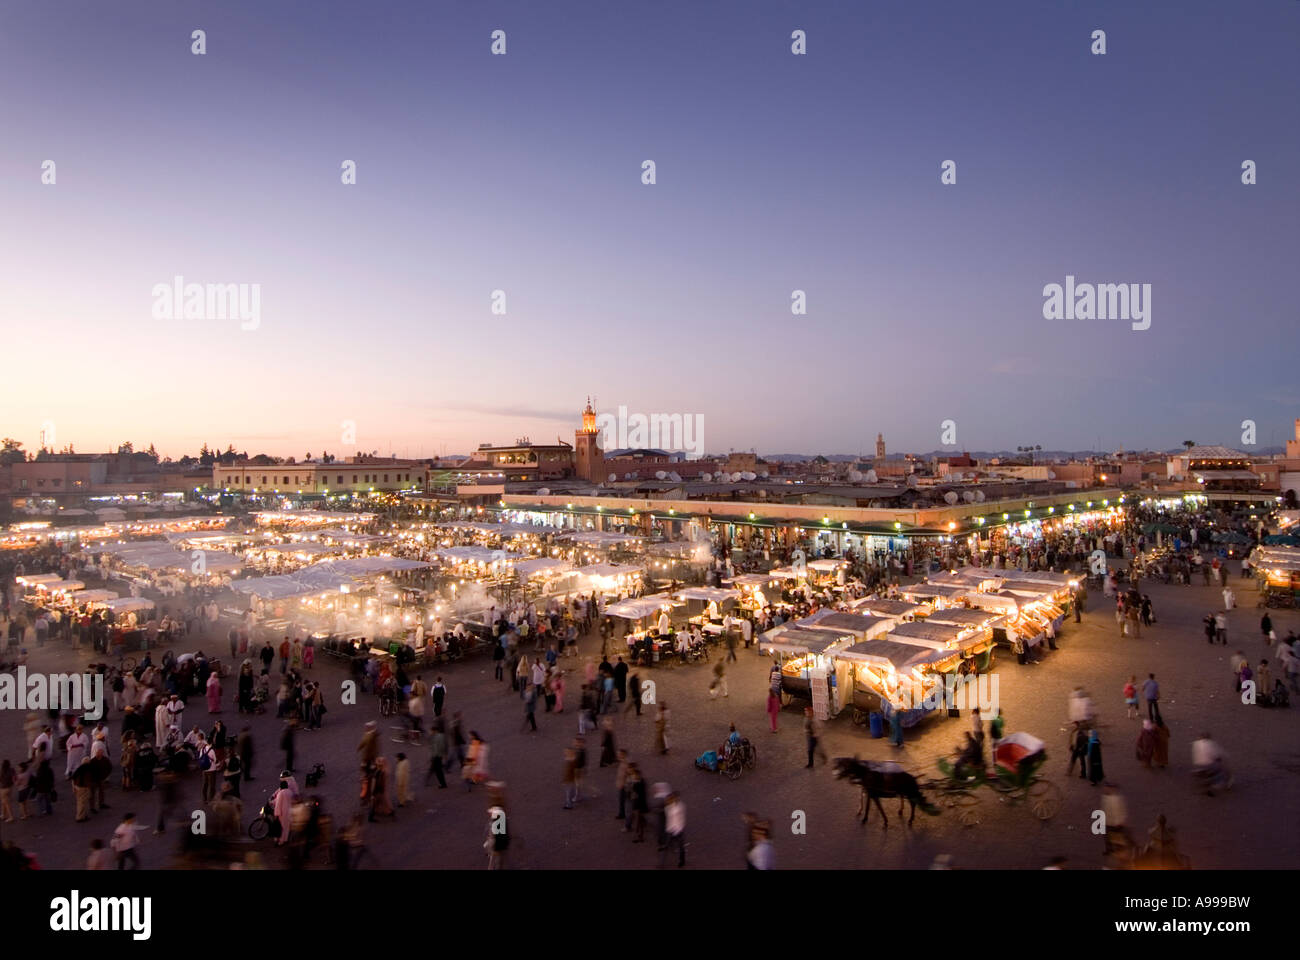 Panoramic view over the open air food stalls in the  central square of Djemaa El Fna in Marrakesh  Morocco Stock Photo